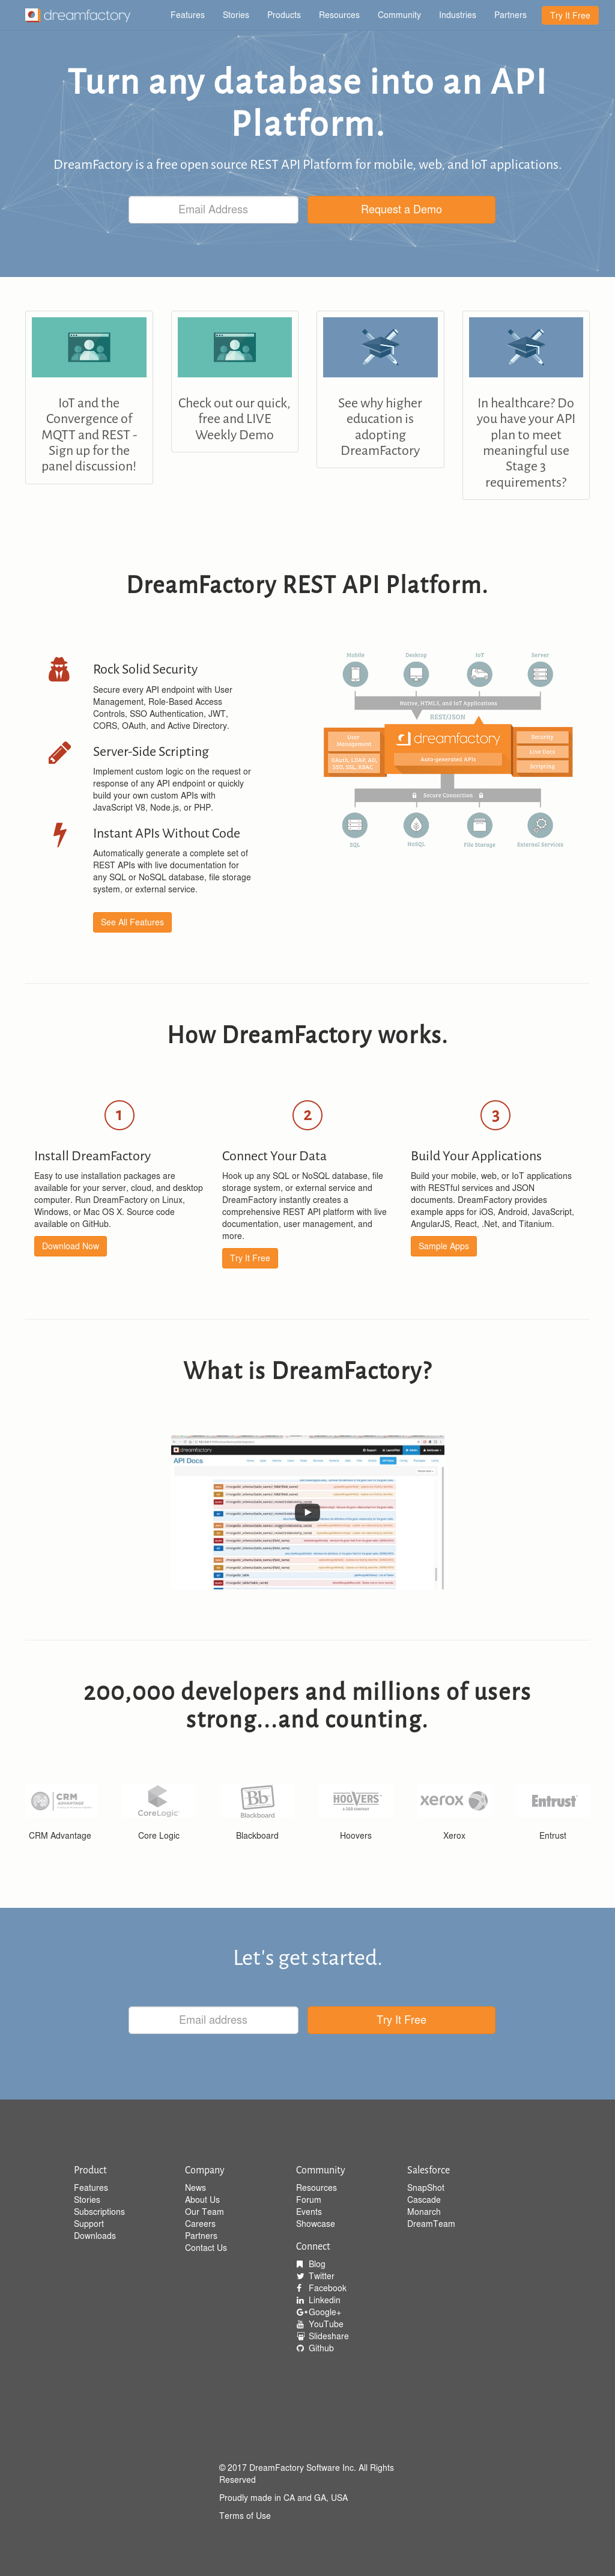 Dream Factory Competitors, Revenue and Employees - Owler